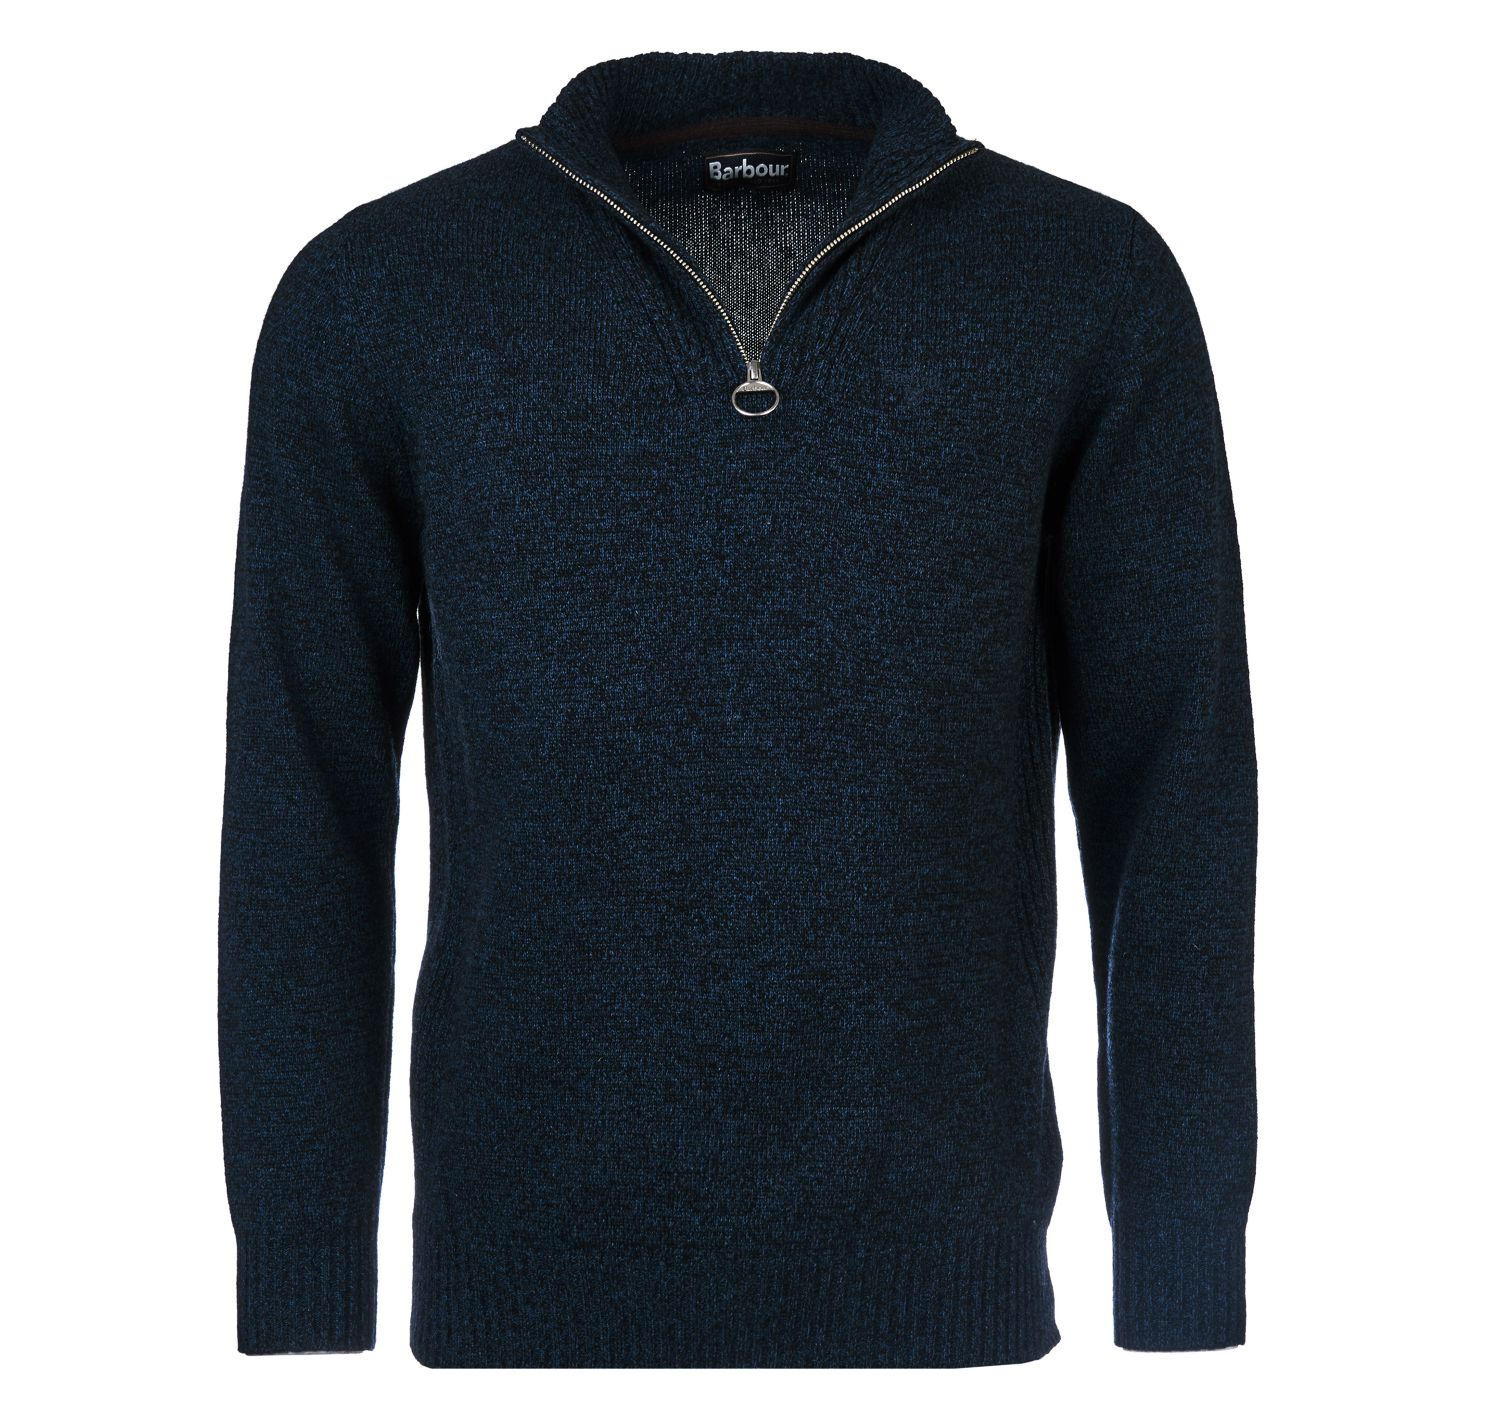 Barbour Essential Lambswool Half Zip Jumper Navy Mix Barbour Lifestyle: from the Classic capsule